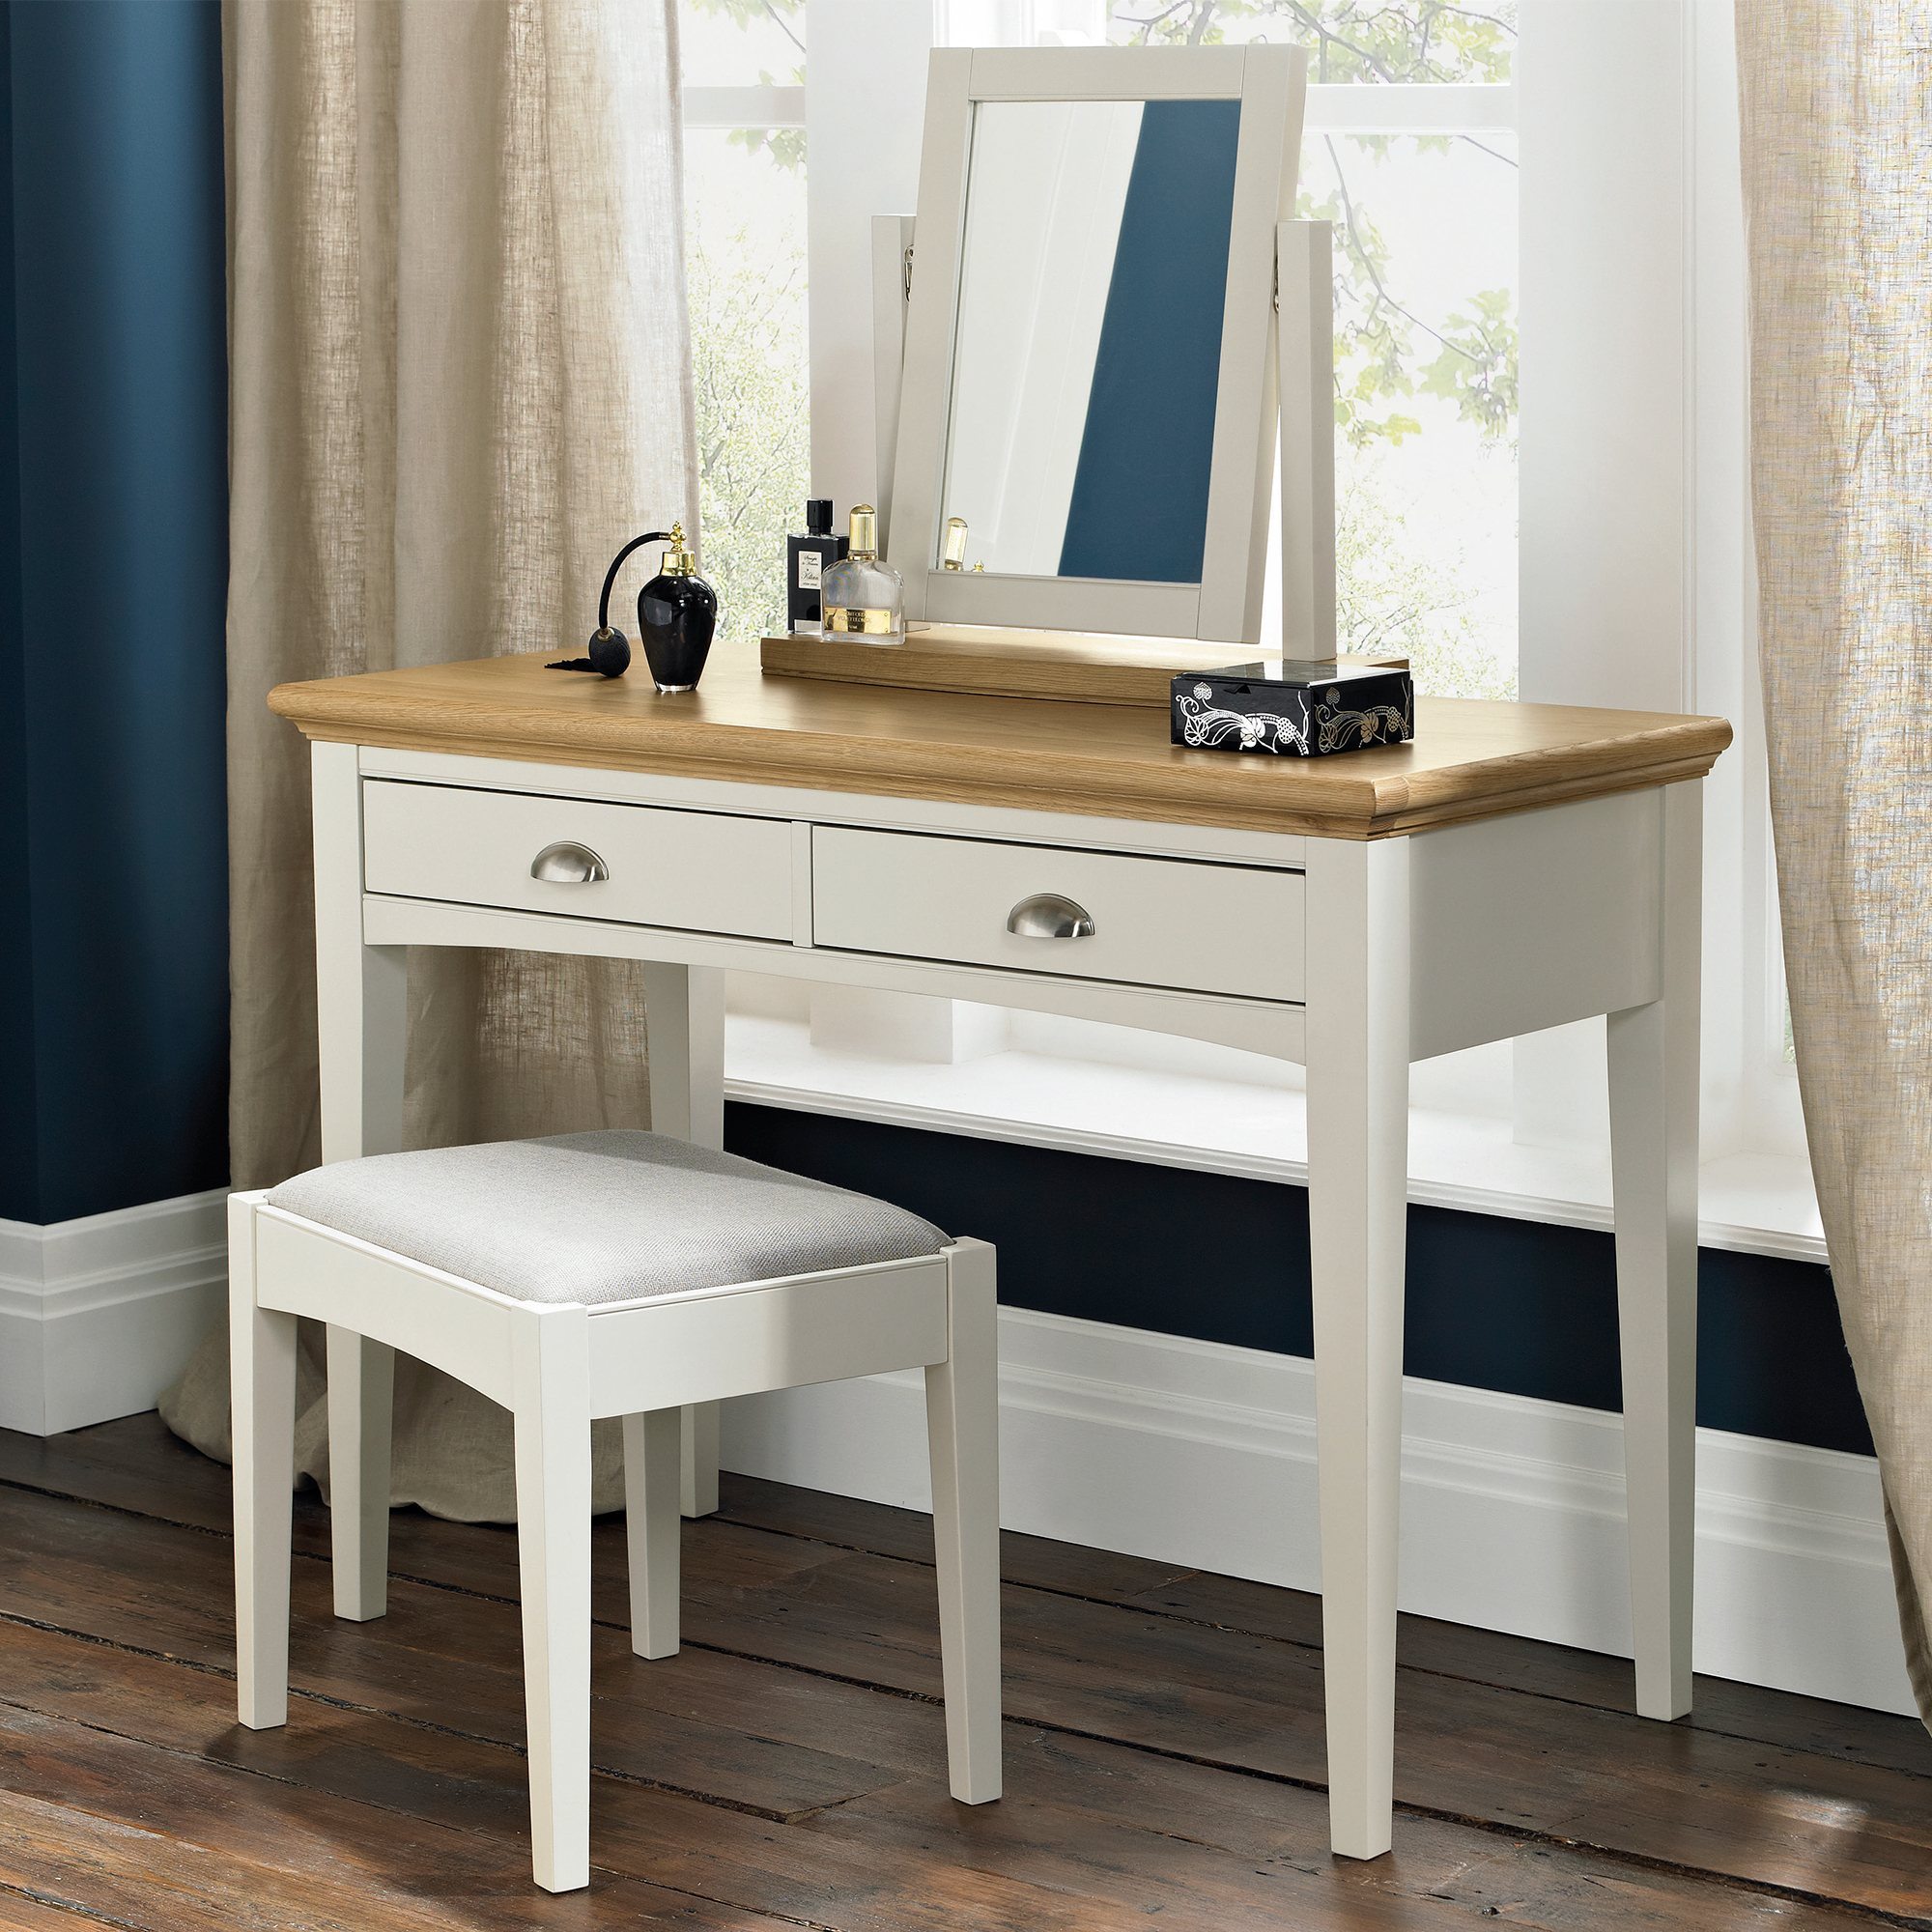 KYRA TWOTONE DRESSING TABLE - L110cm x D48cm x H79cm.